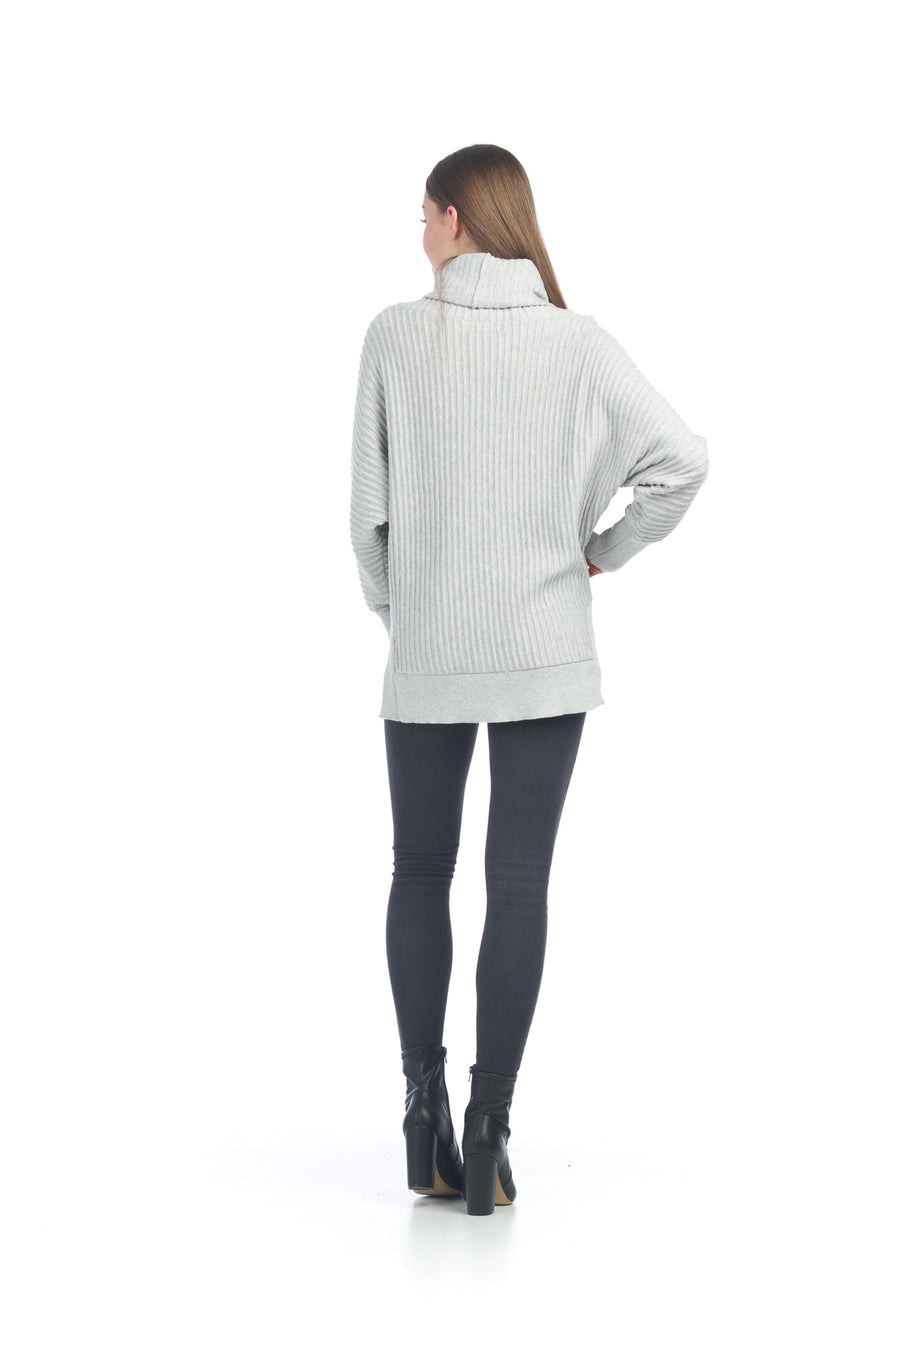 Papillon ST-06206 Ribbed Sweater w/Cowl Neck - Grey